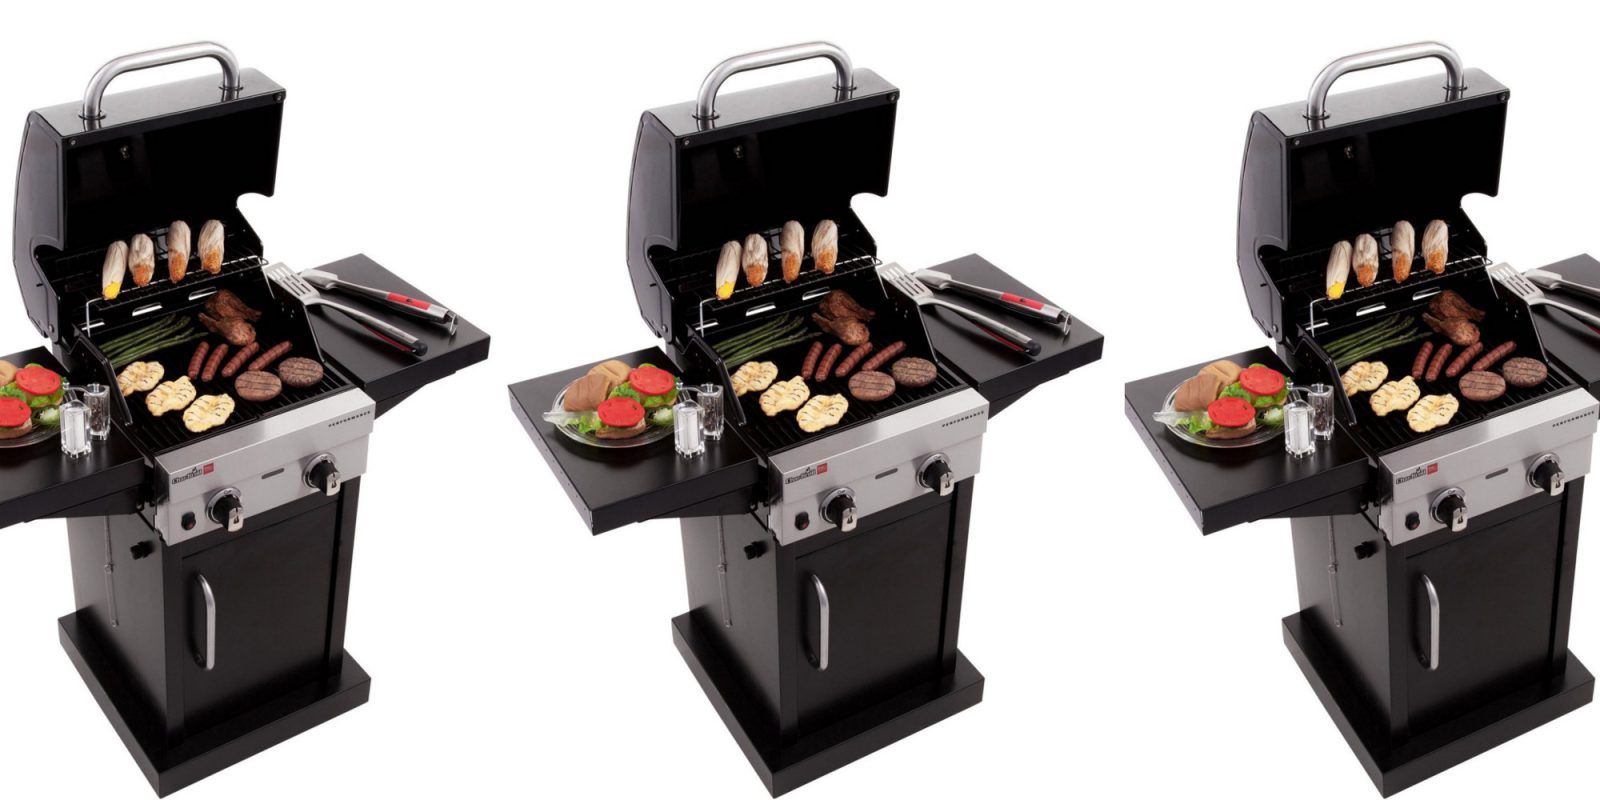 Char-Broil's TRU 2-Burner Grill is more than $85 off today at $165 shipped